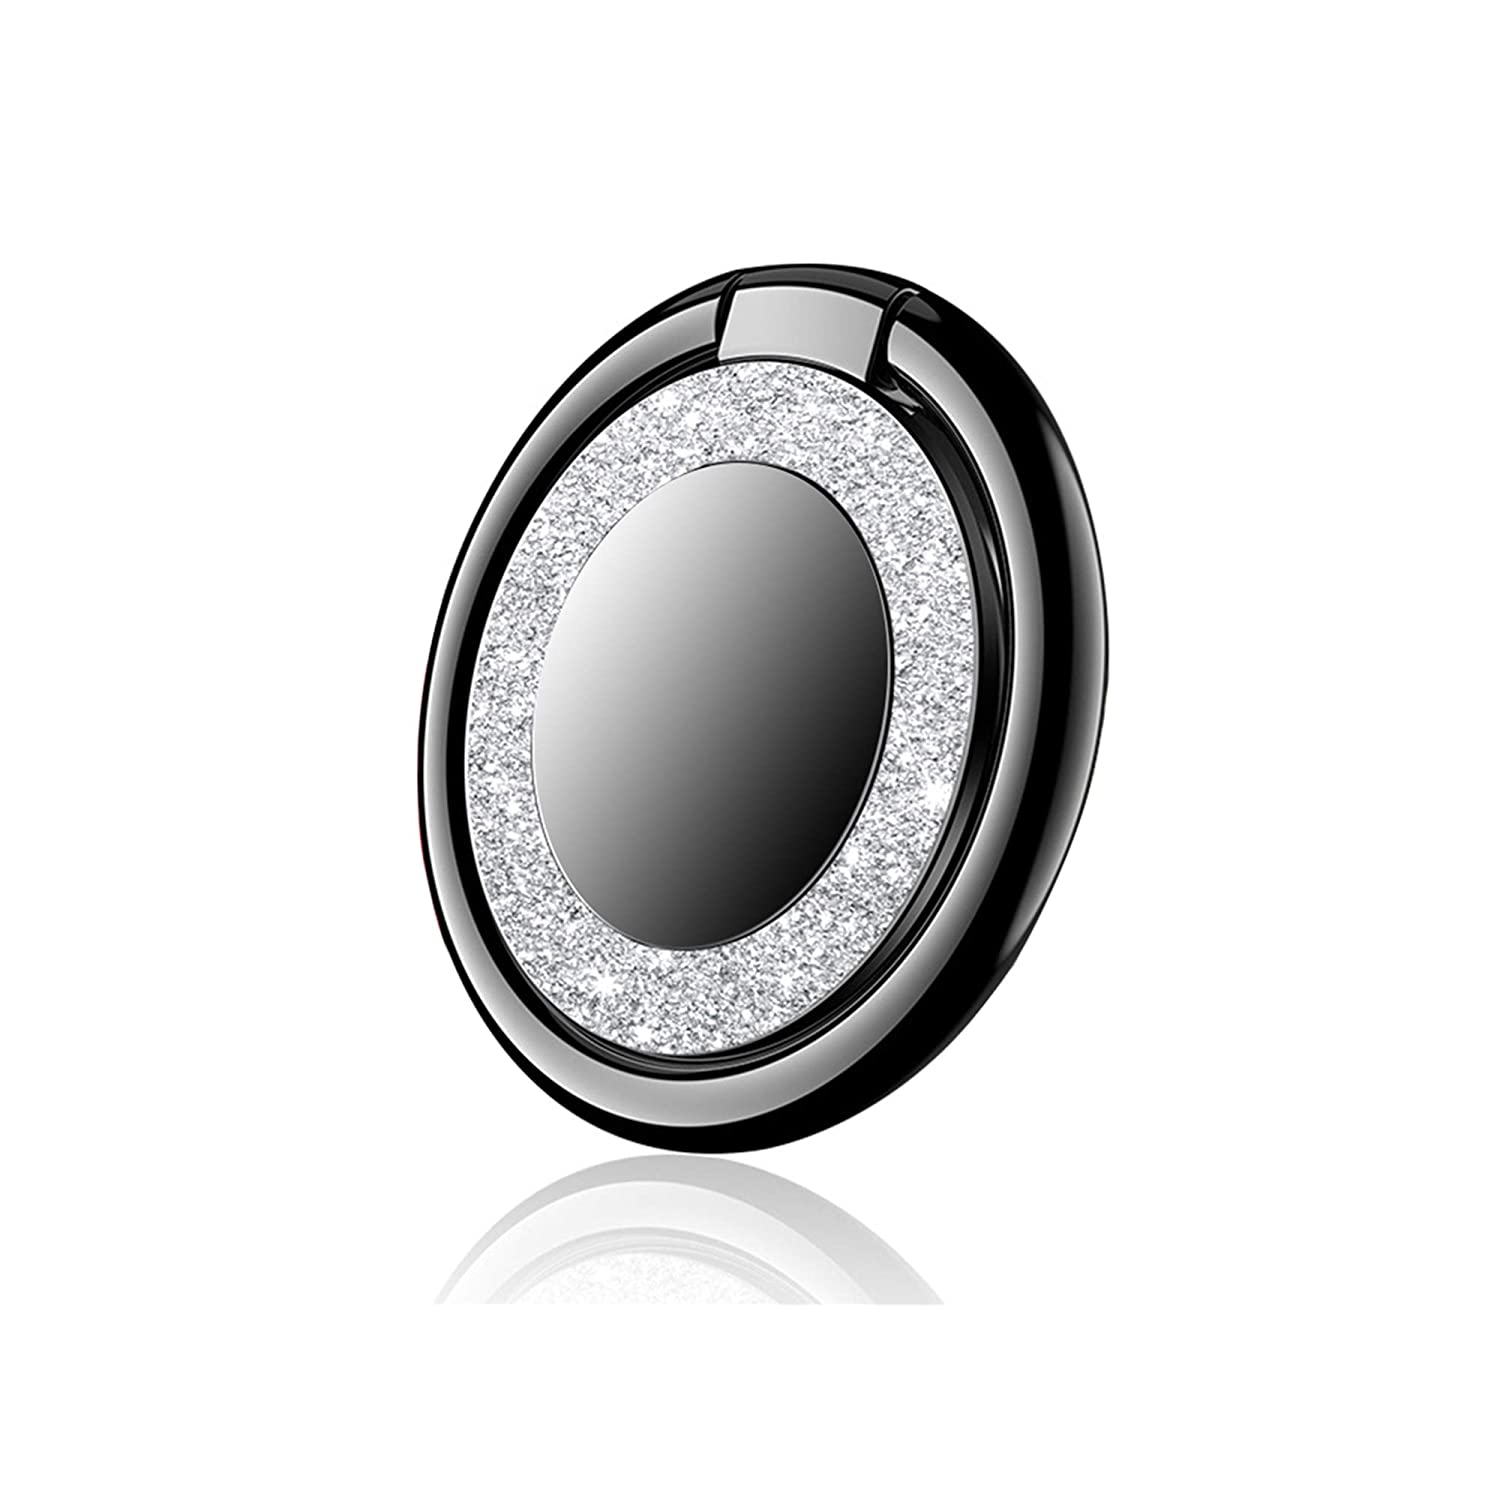 Circular-Silver Owoda Crystal Phone Finger Ring Holder 360/°Thin Phone Ring Stand Magnetic Car Mount Grip for Phone Samsung Table and More